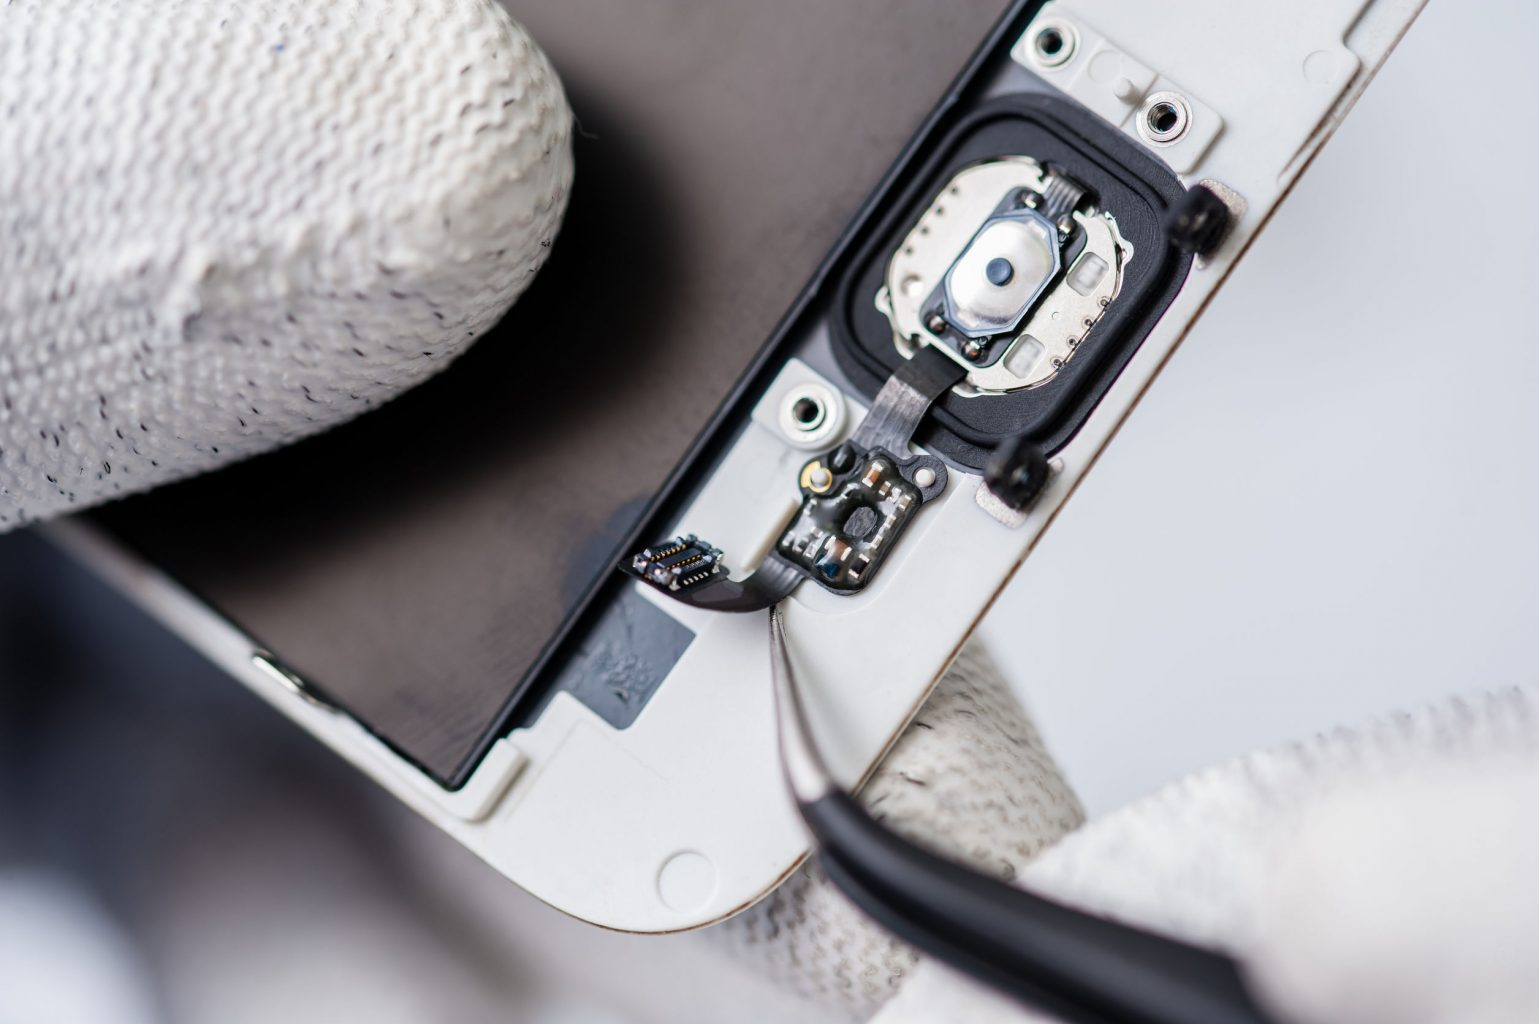 6 Ways to Repair a Broken Cellphone at Home